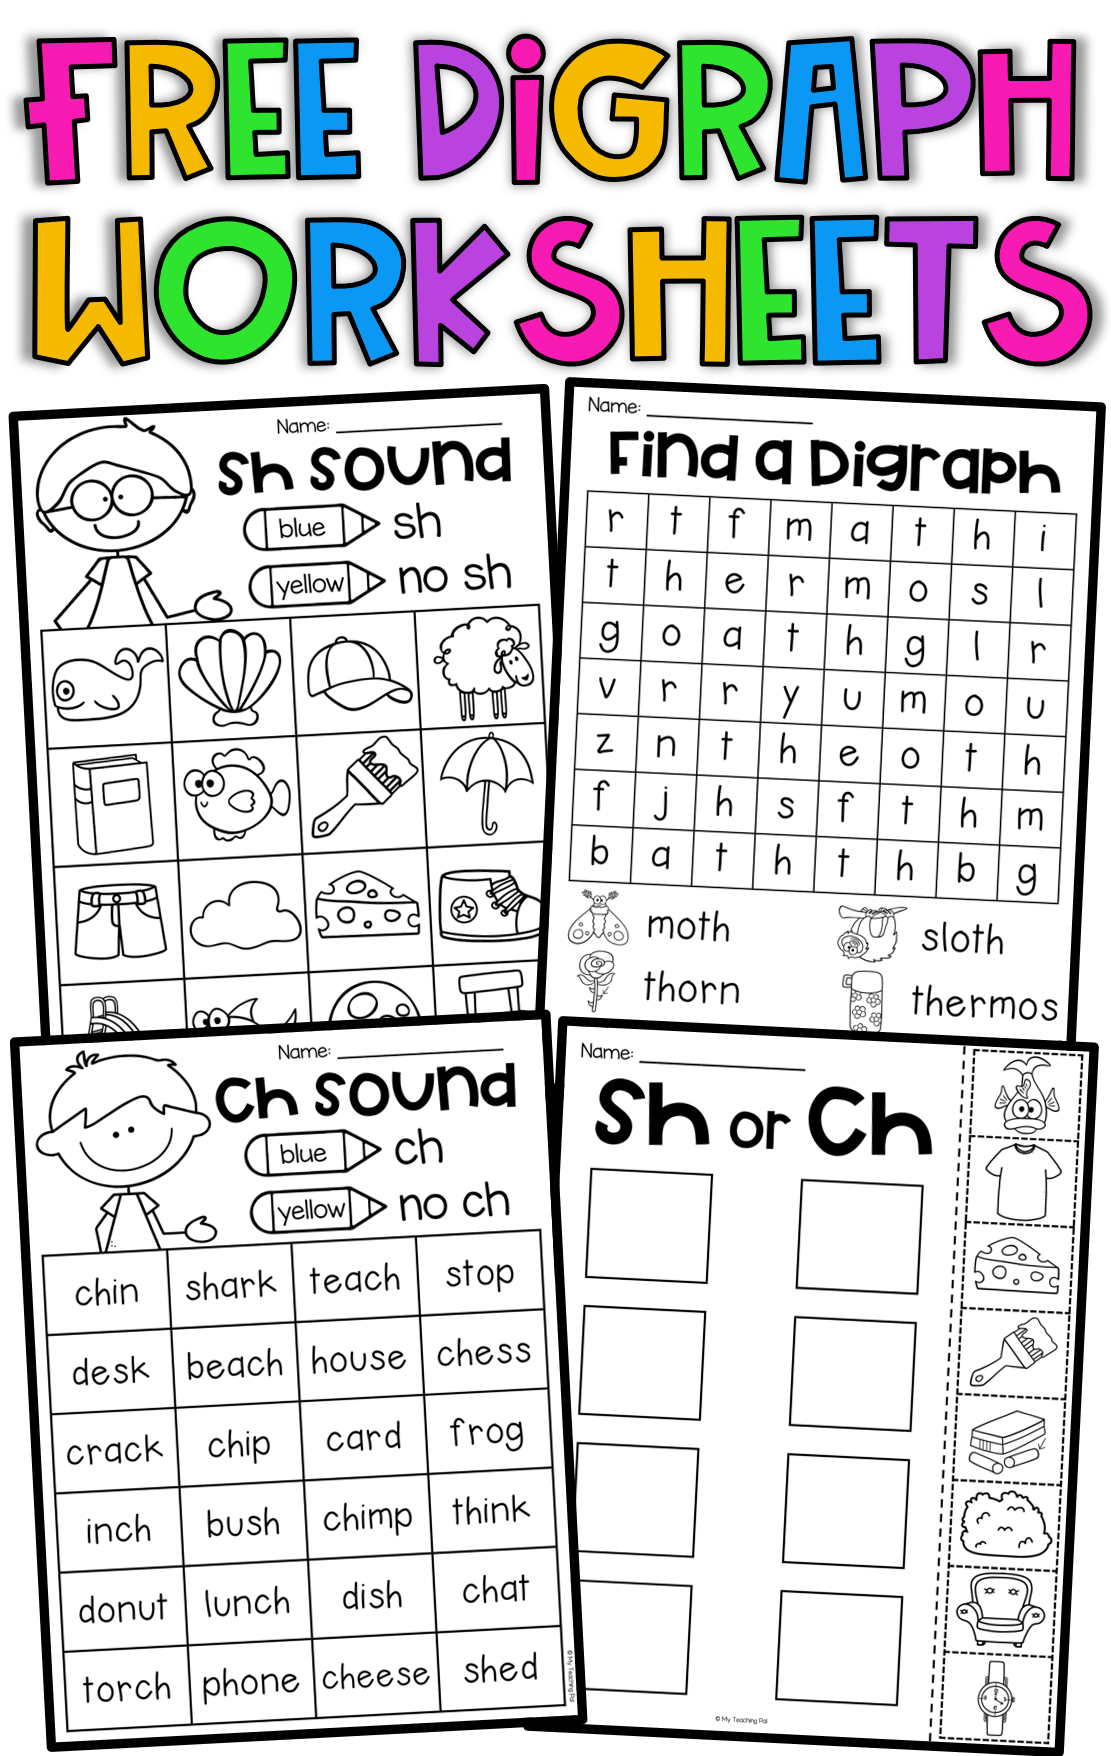 Free Digraph Worksheets Ch Th Sh 1st Grade Phonics